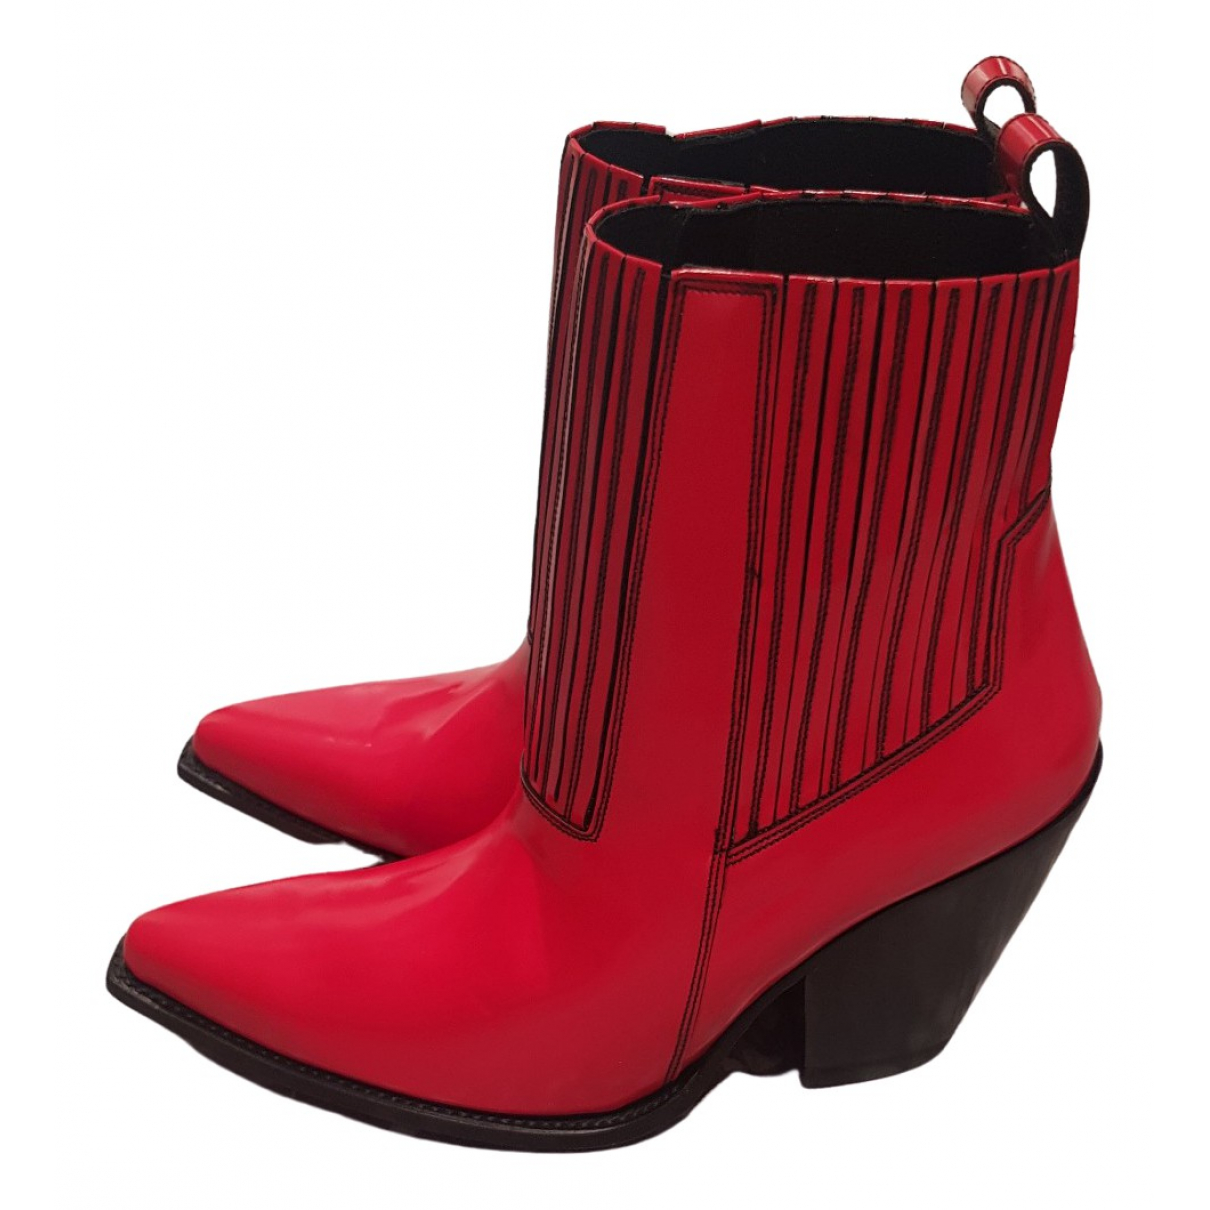 Valentino Garavani \N Red Patent leather Ankle boots for Women 41.5 EU